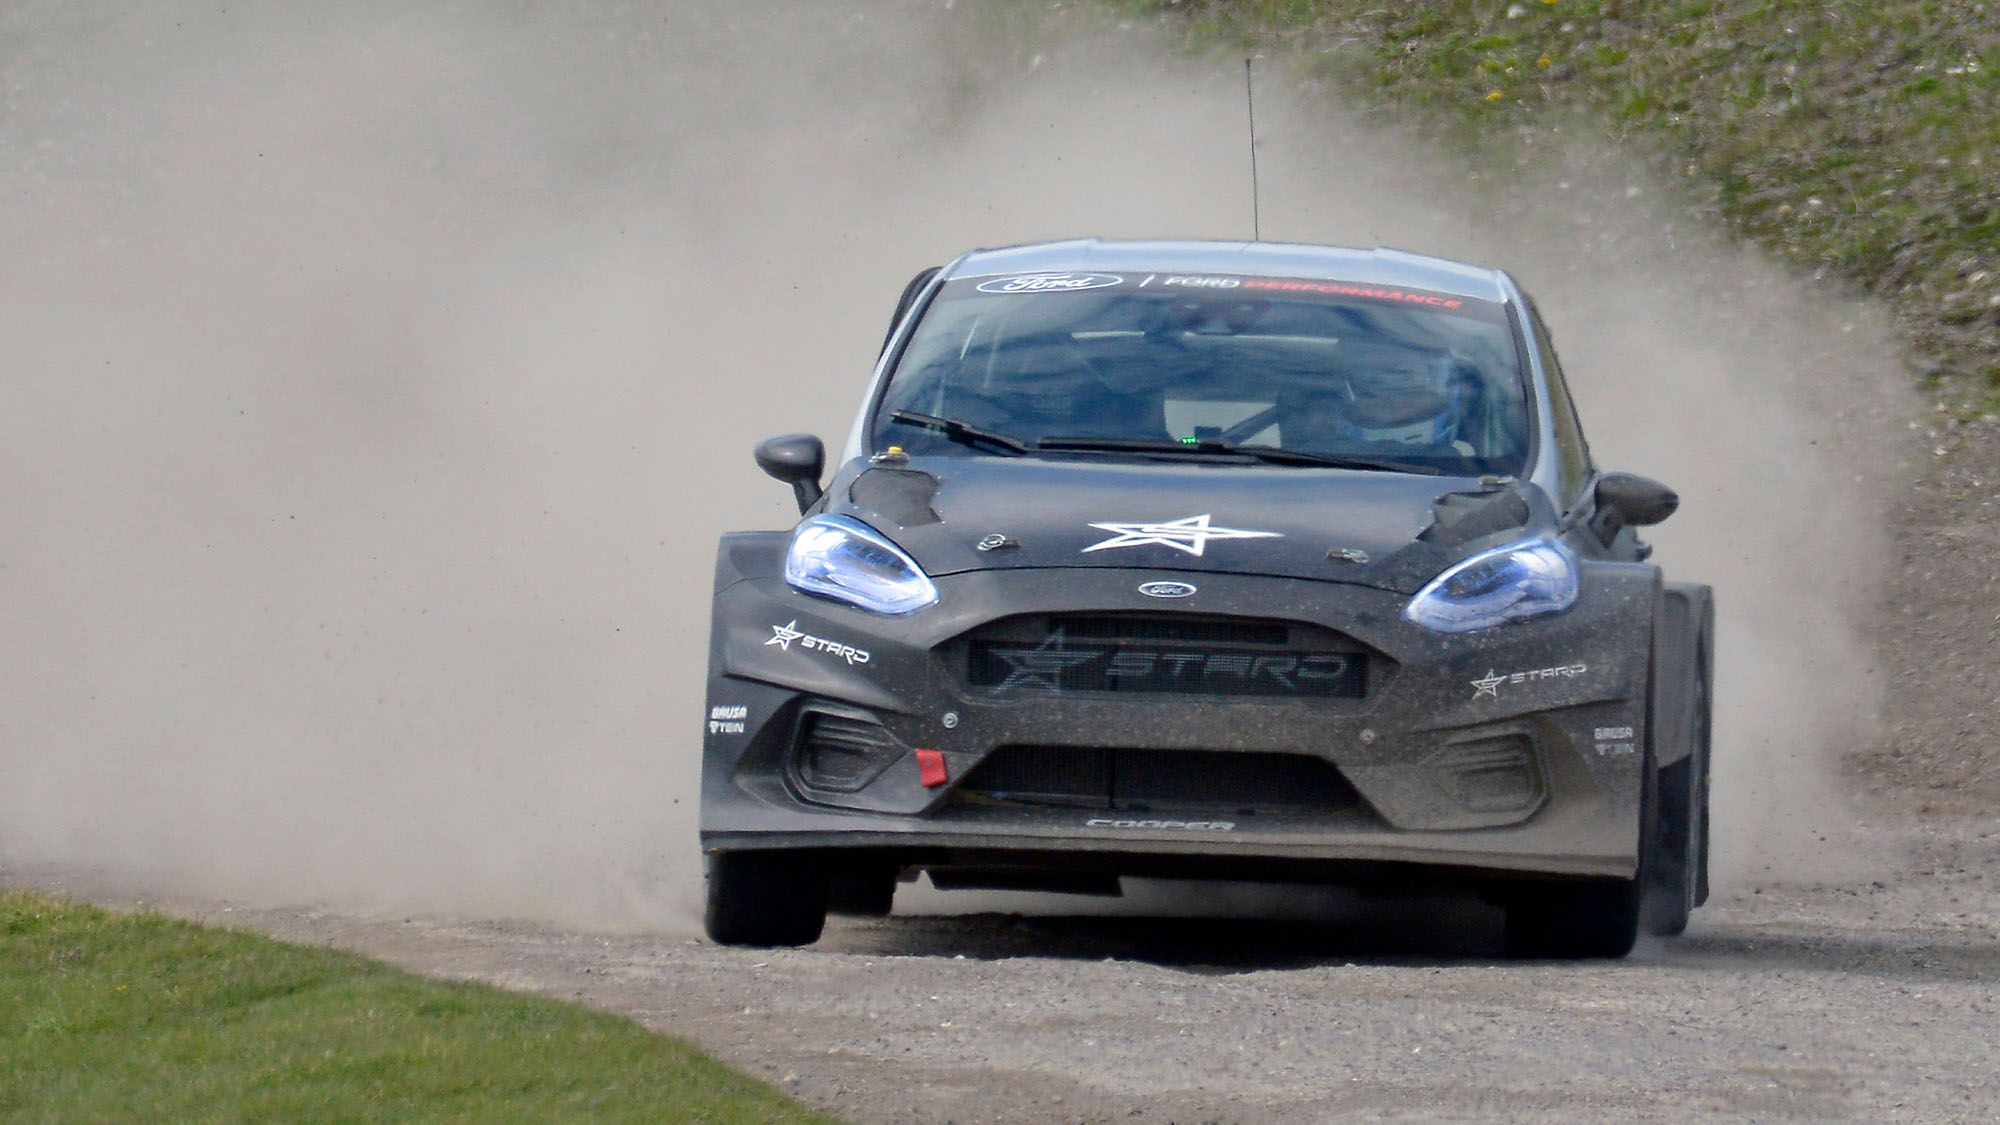 Sir Chris Hoy puts the Fiesta-bodied STARD electric rallycross car through its paces during the 5 Nations BRX test day at Lydden Hill